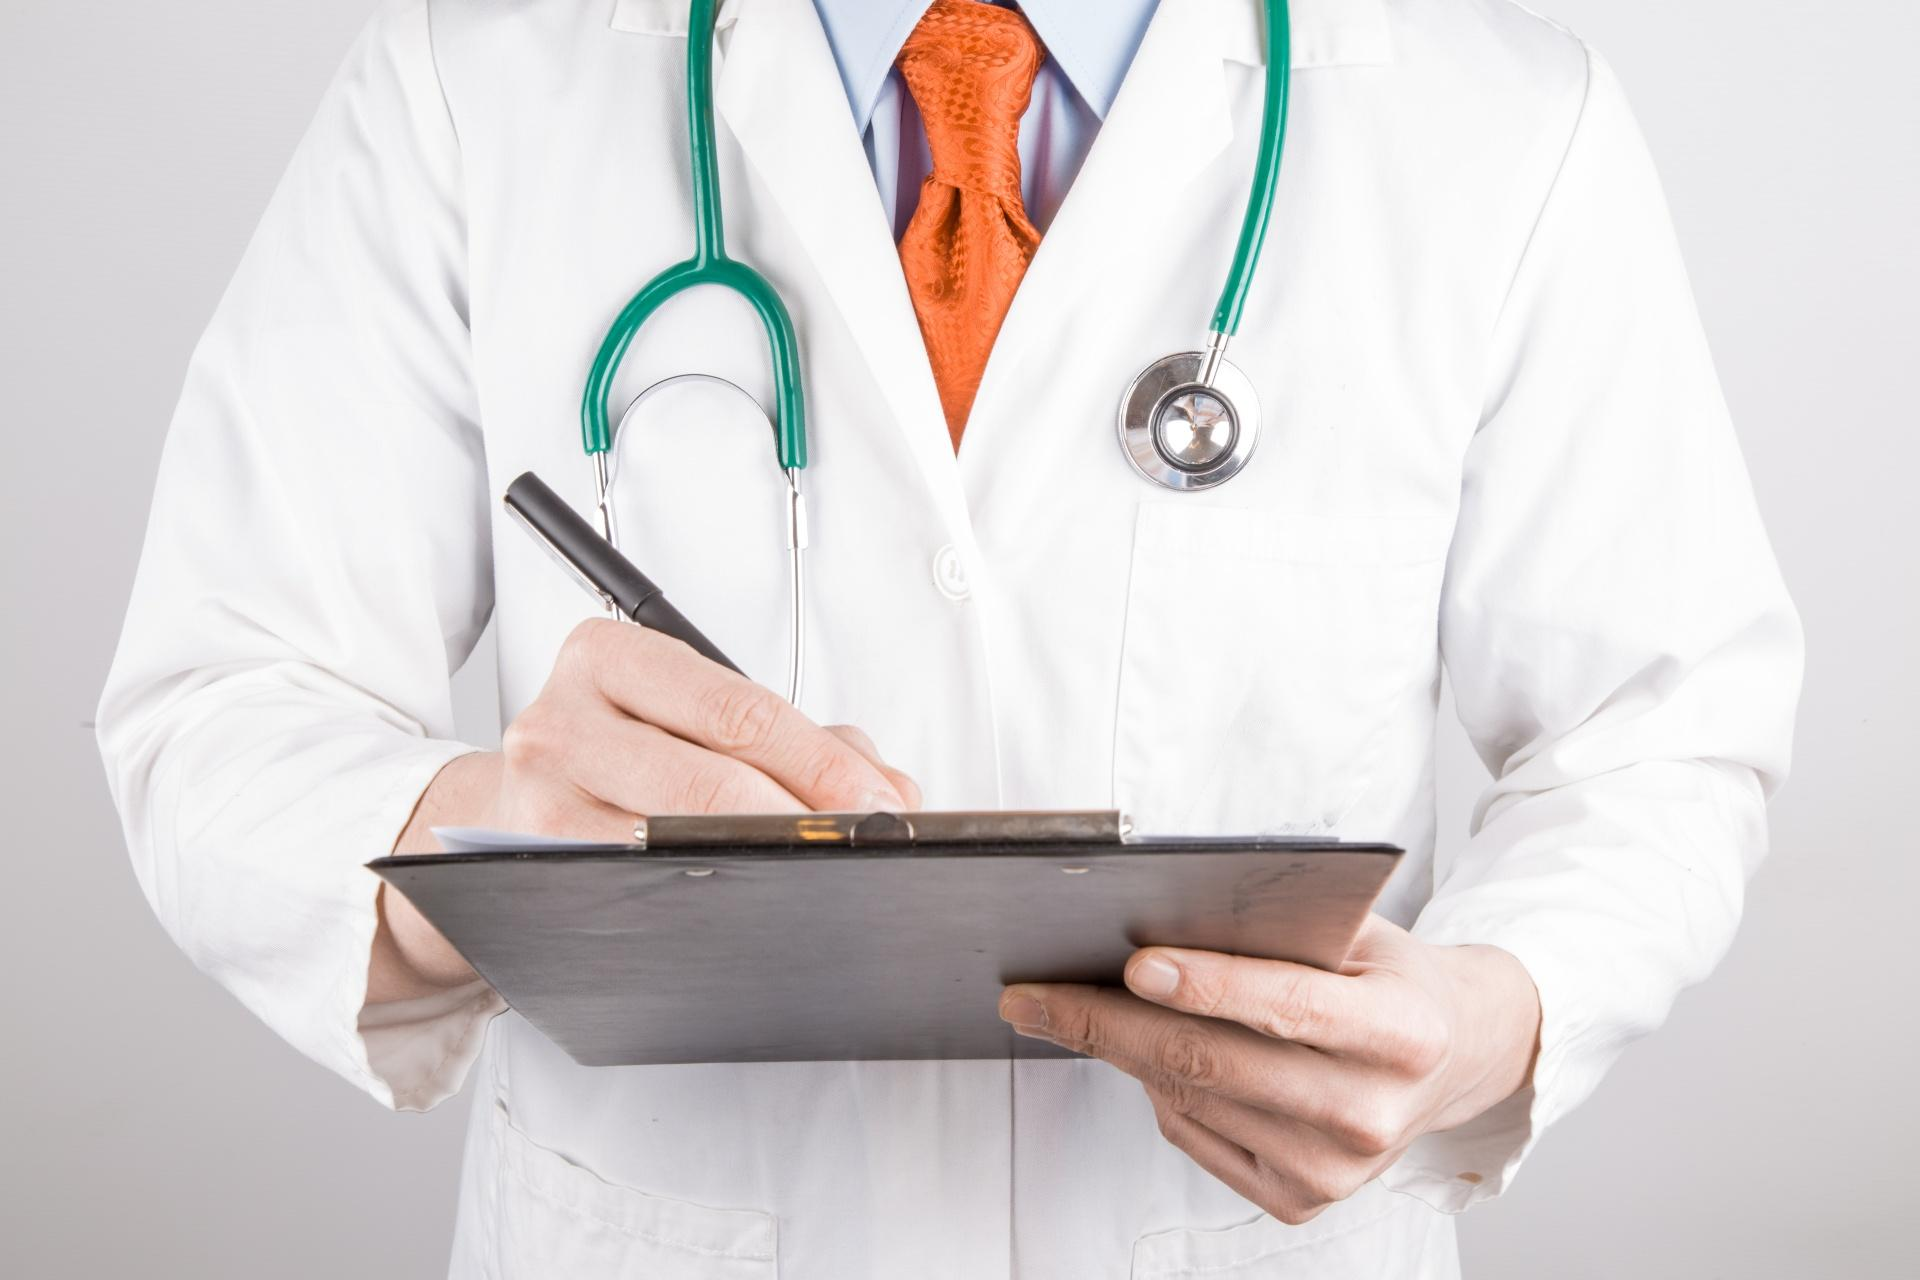 If rewritten, travel ban could mean doctor shortages in ...